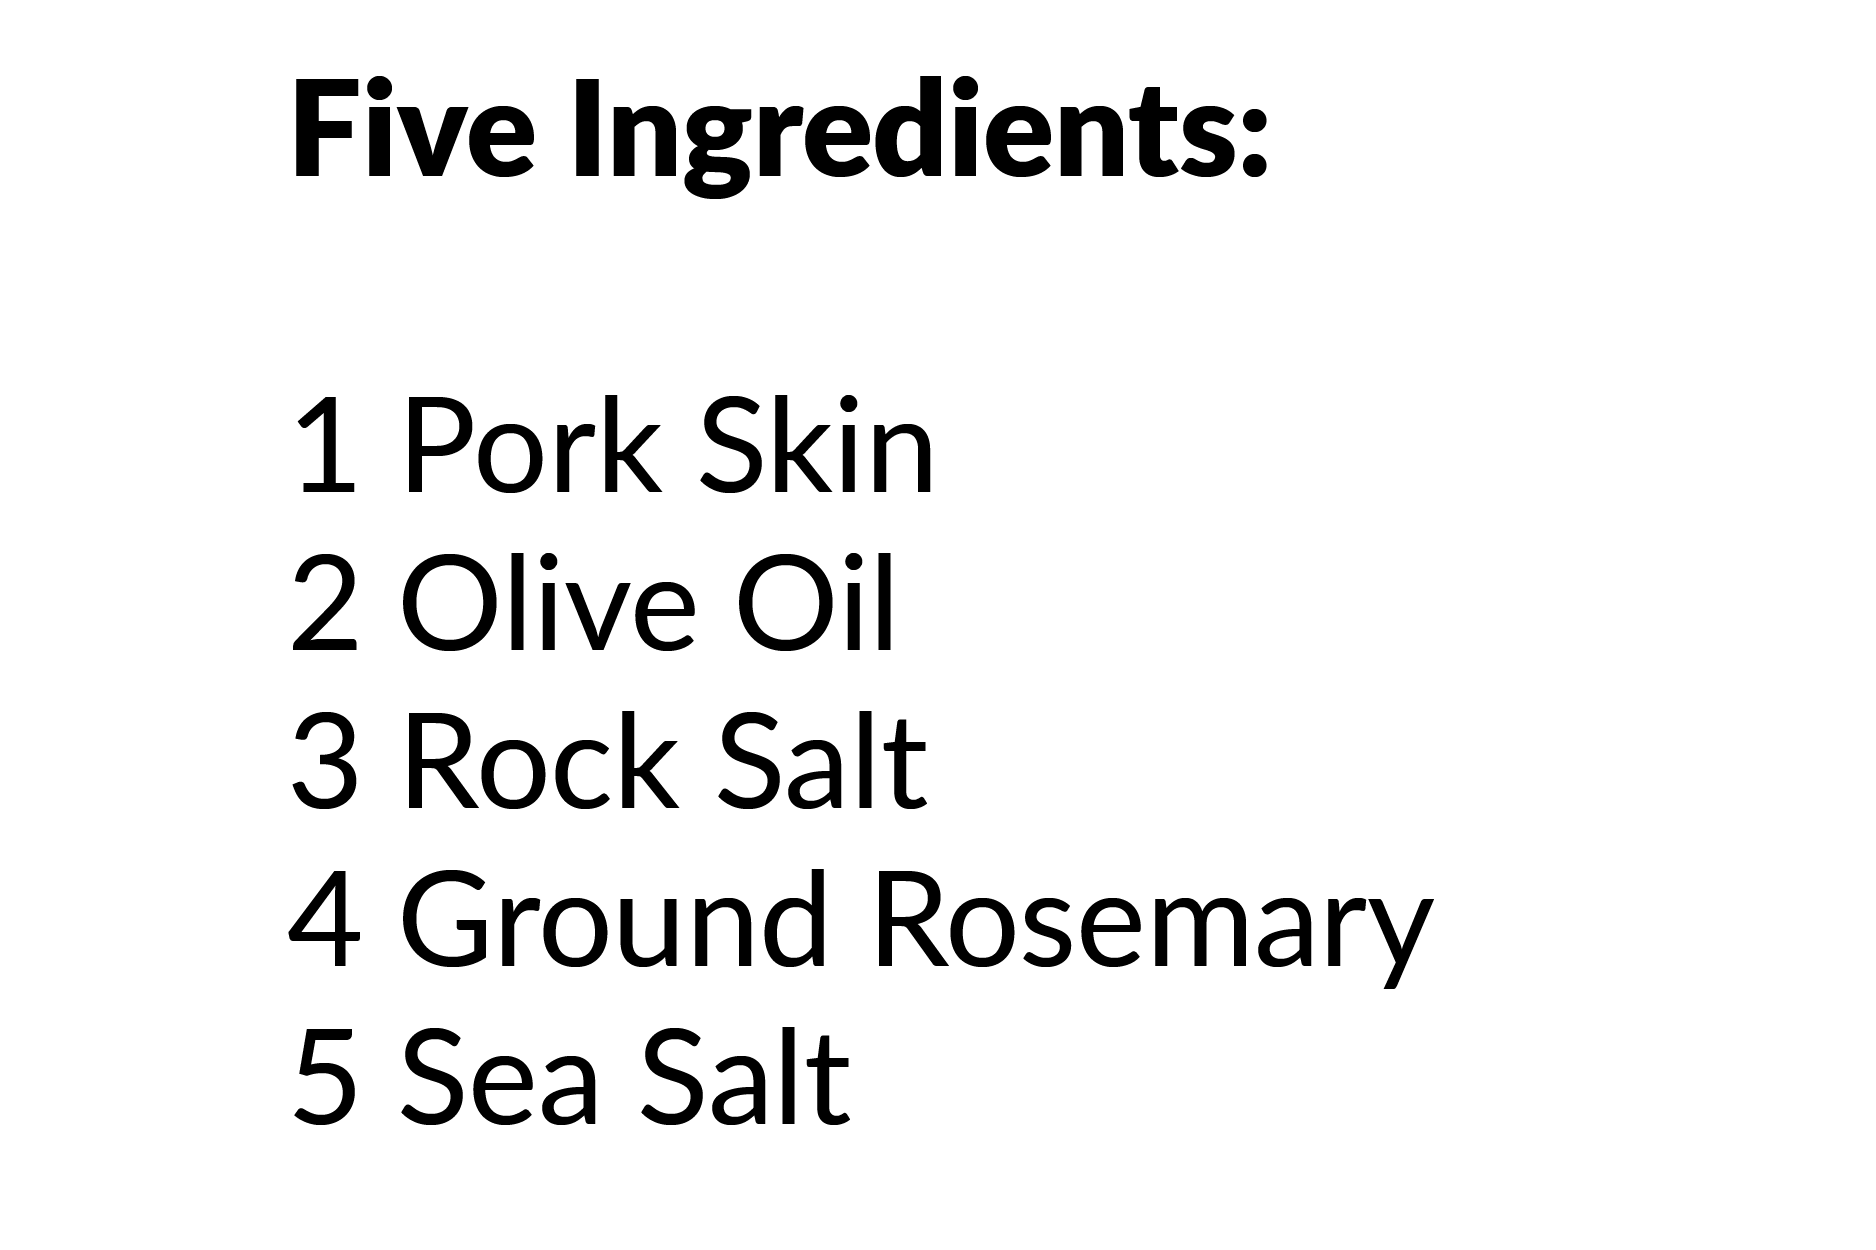 rosemary ingredients